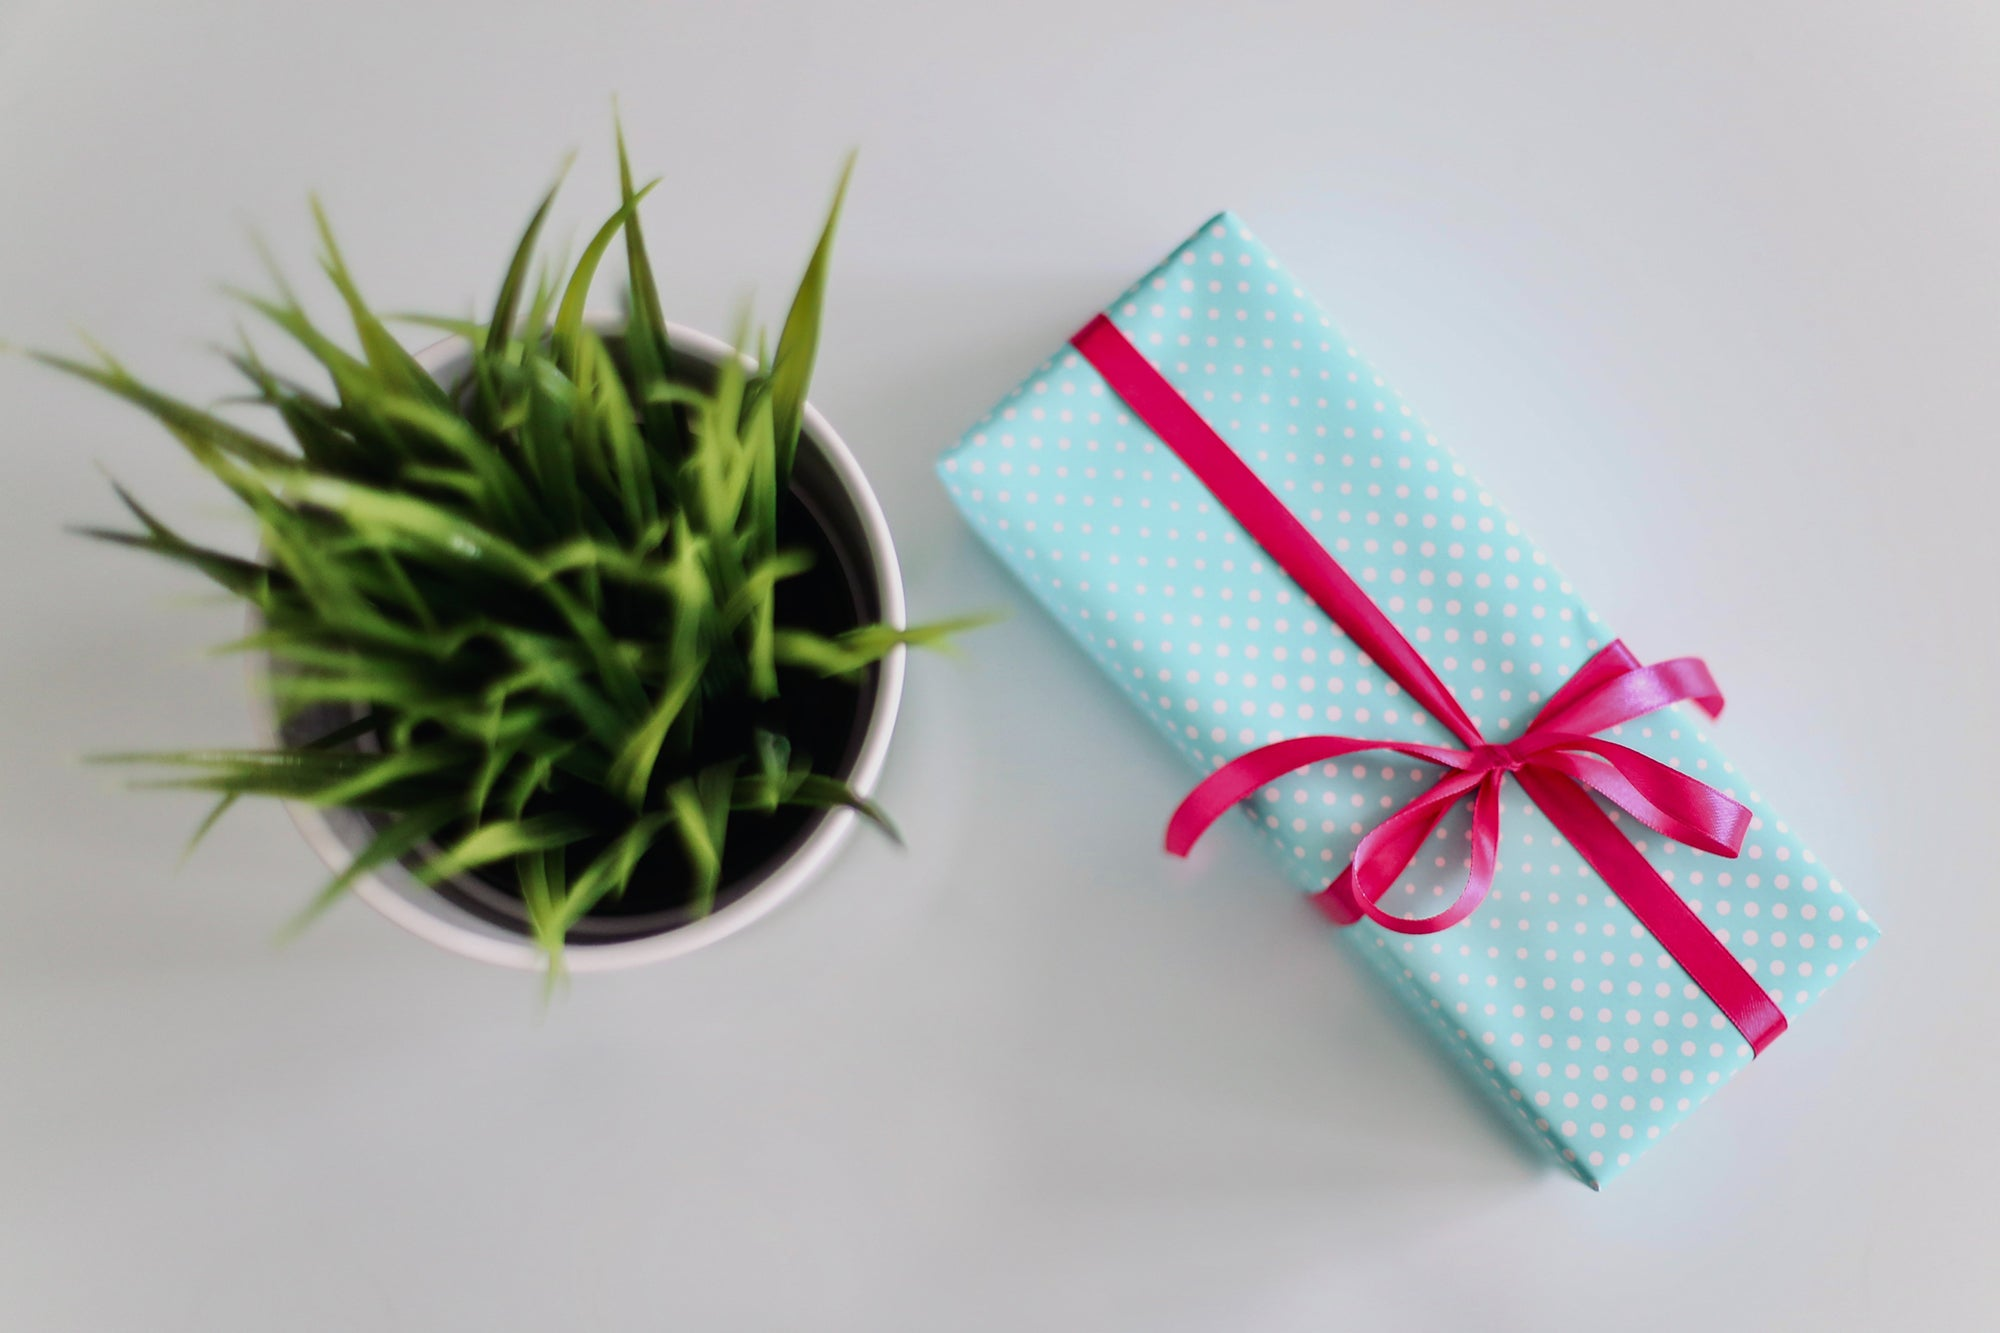 plant and a gift with blue wrapping paper and a pink ribbon